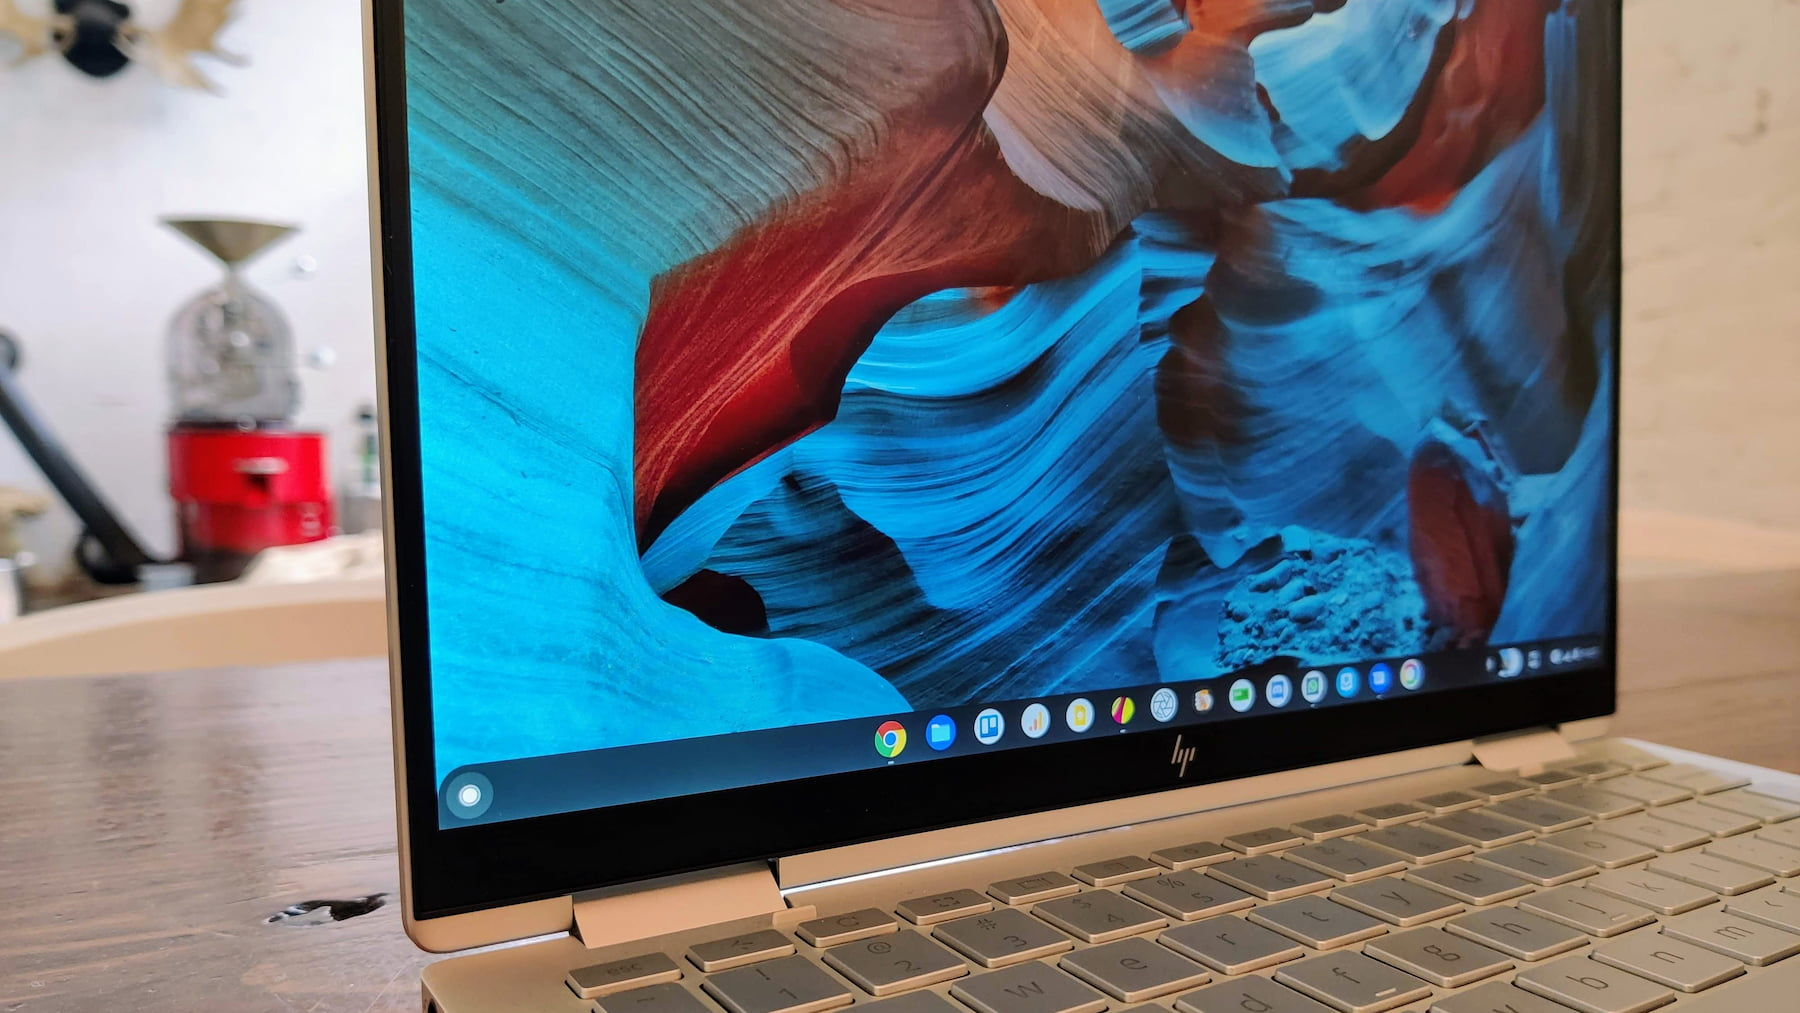 Upcoming Chromebook shelf 'drag to pin' apps feature is simple but useful